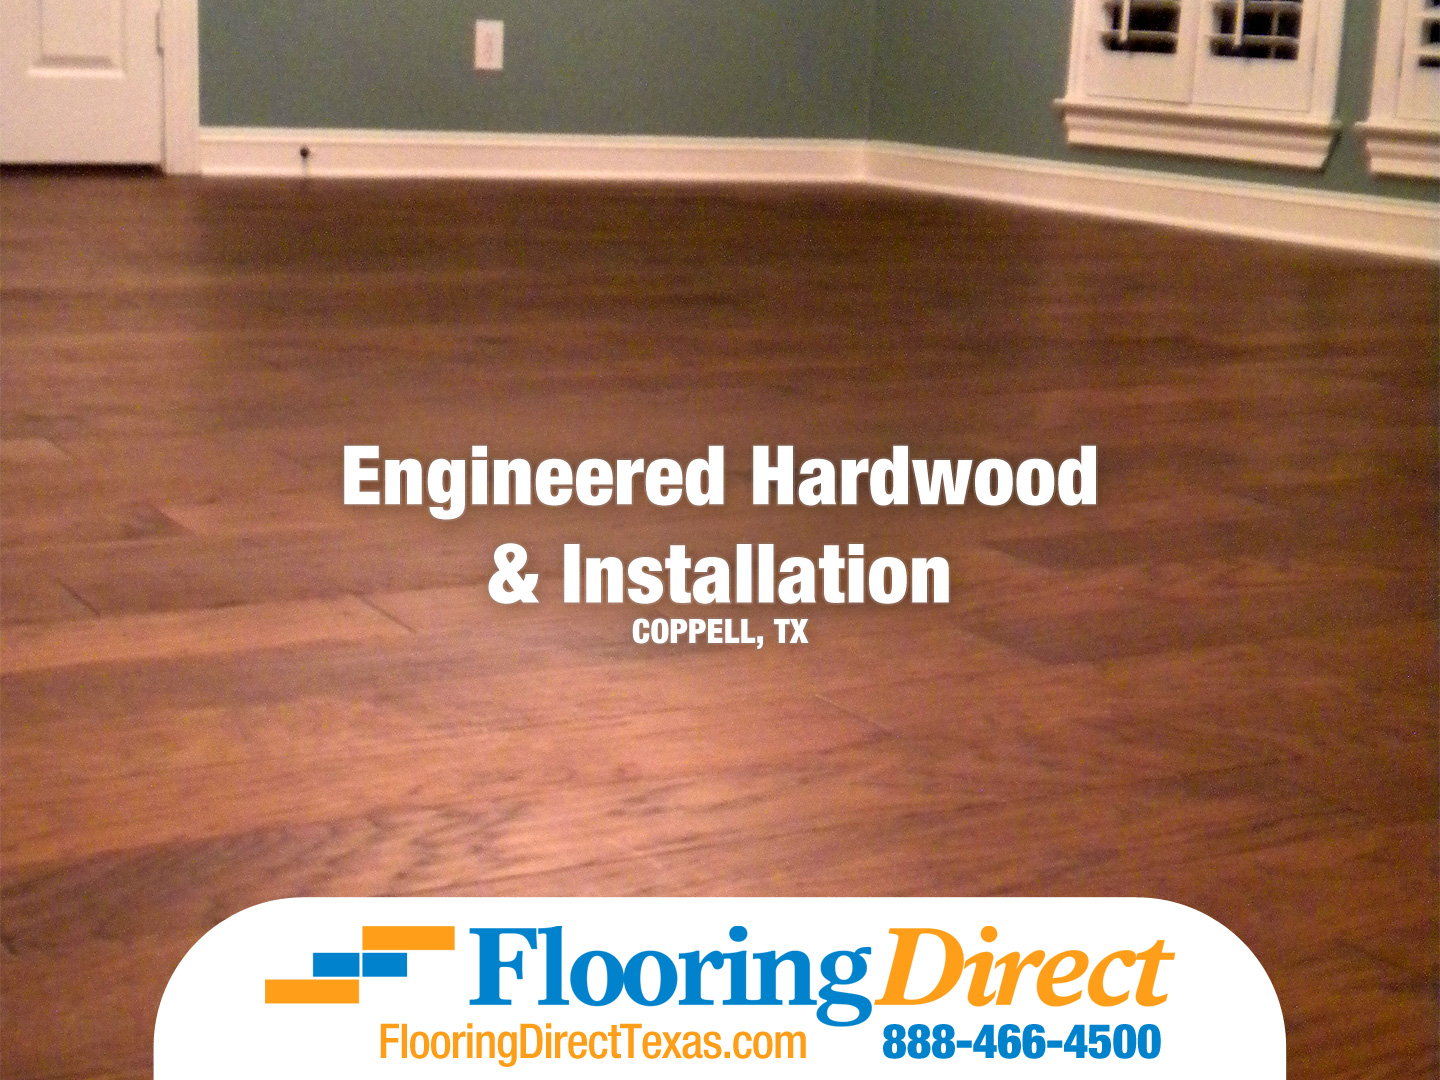 Engineered Hardwood And Installation Coppell TX Flooring Direct 888-466-4500 WS5